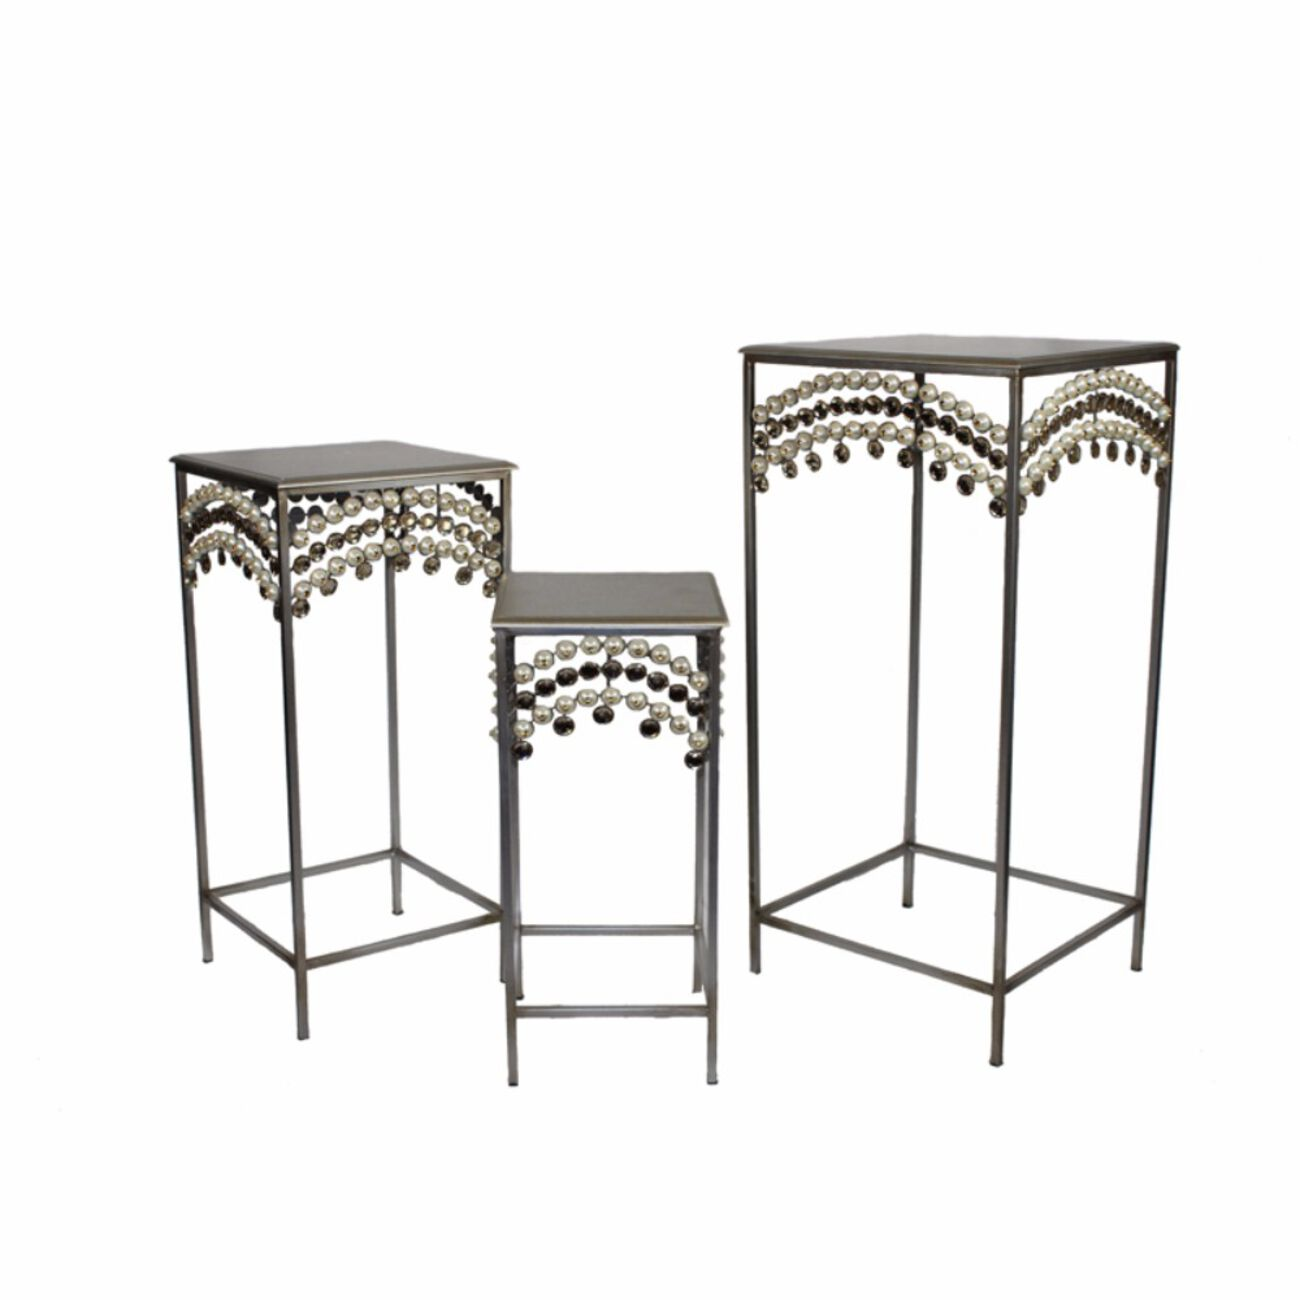 Set Of 3 Metalic Accent Table, Silver